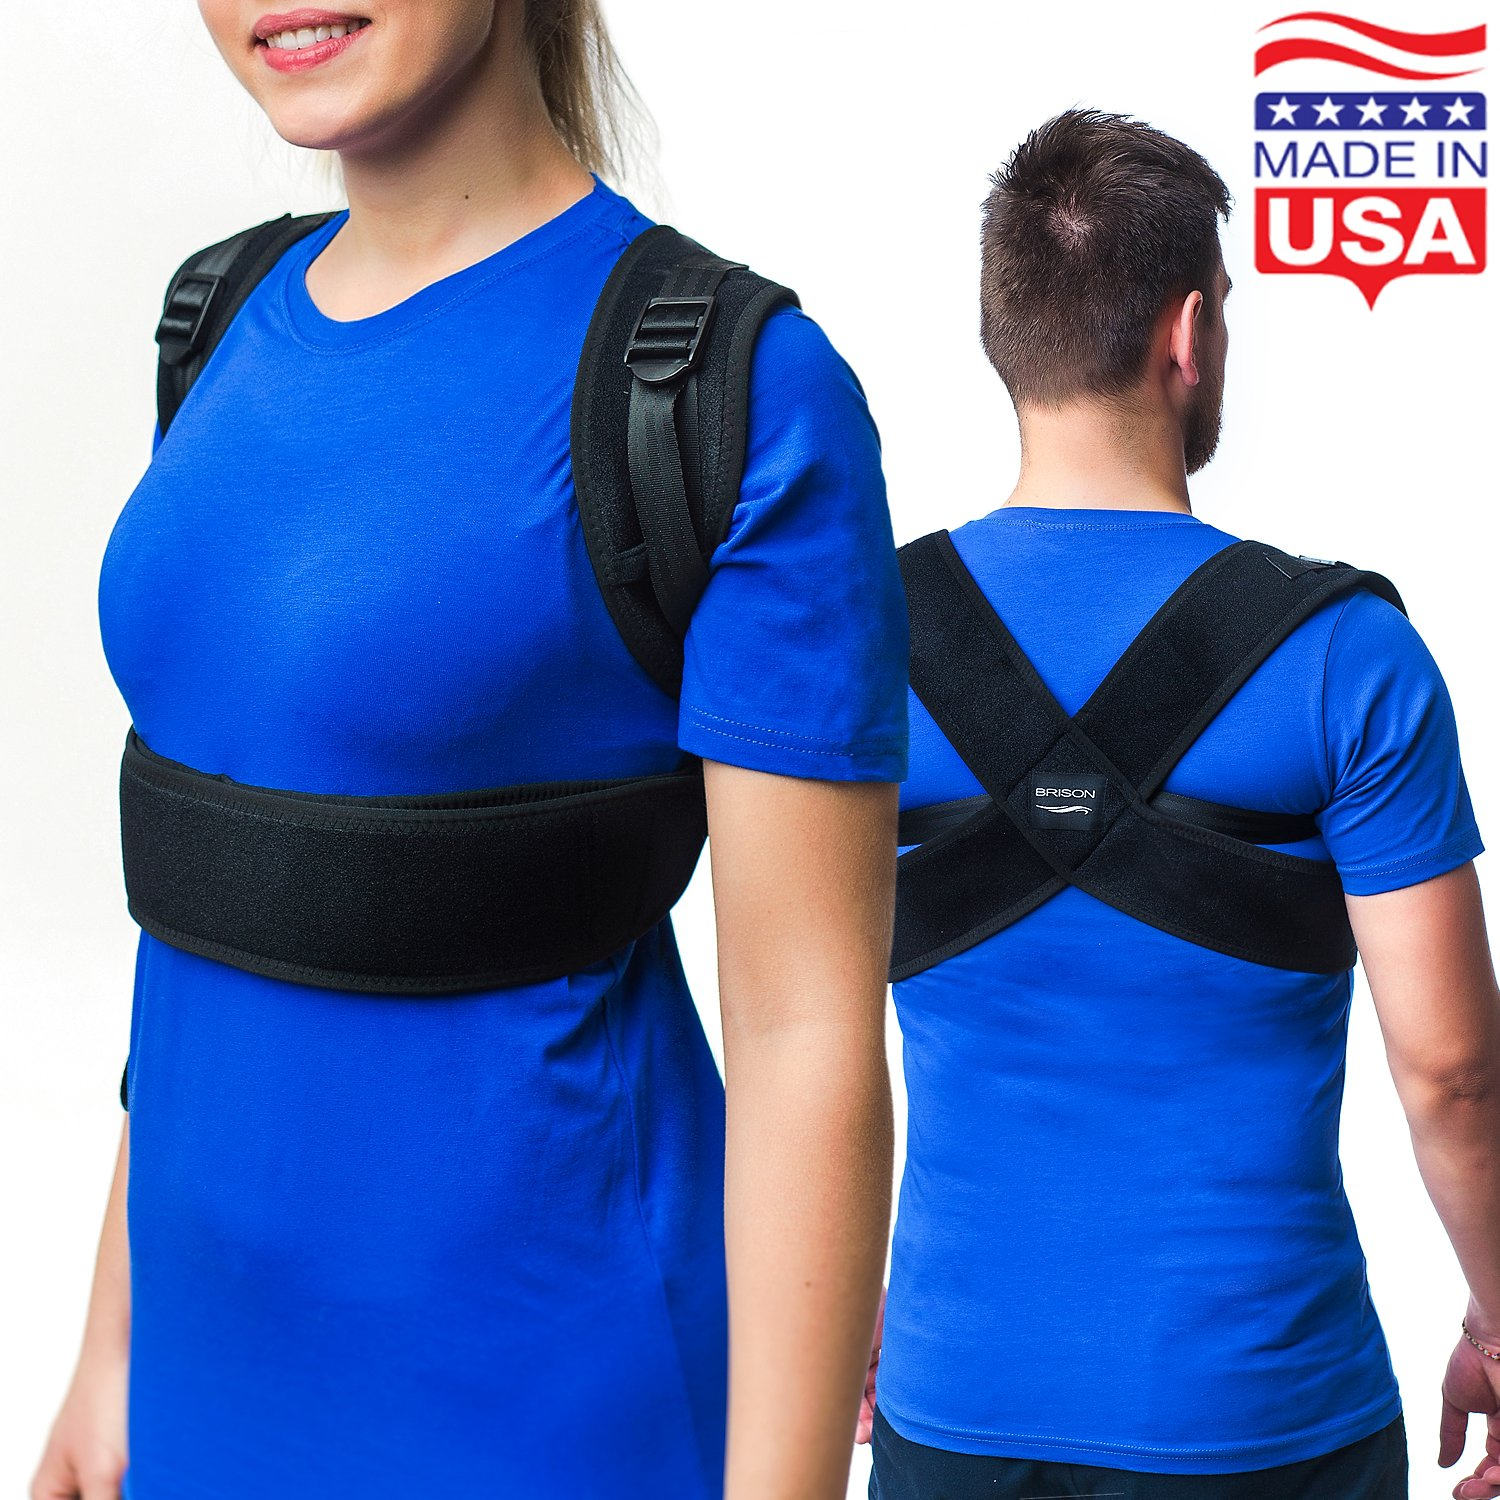 Back brace for kyphosis pictures Thoracic Kyphosis Treatment Kyphosis Symptoms